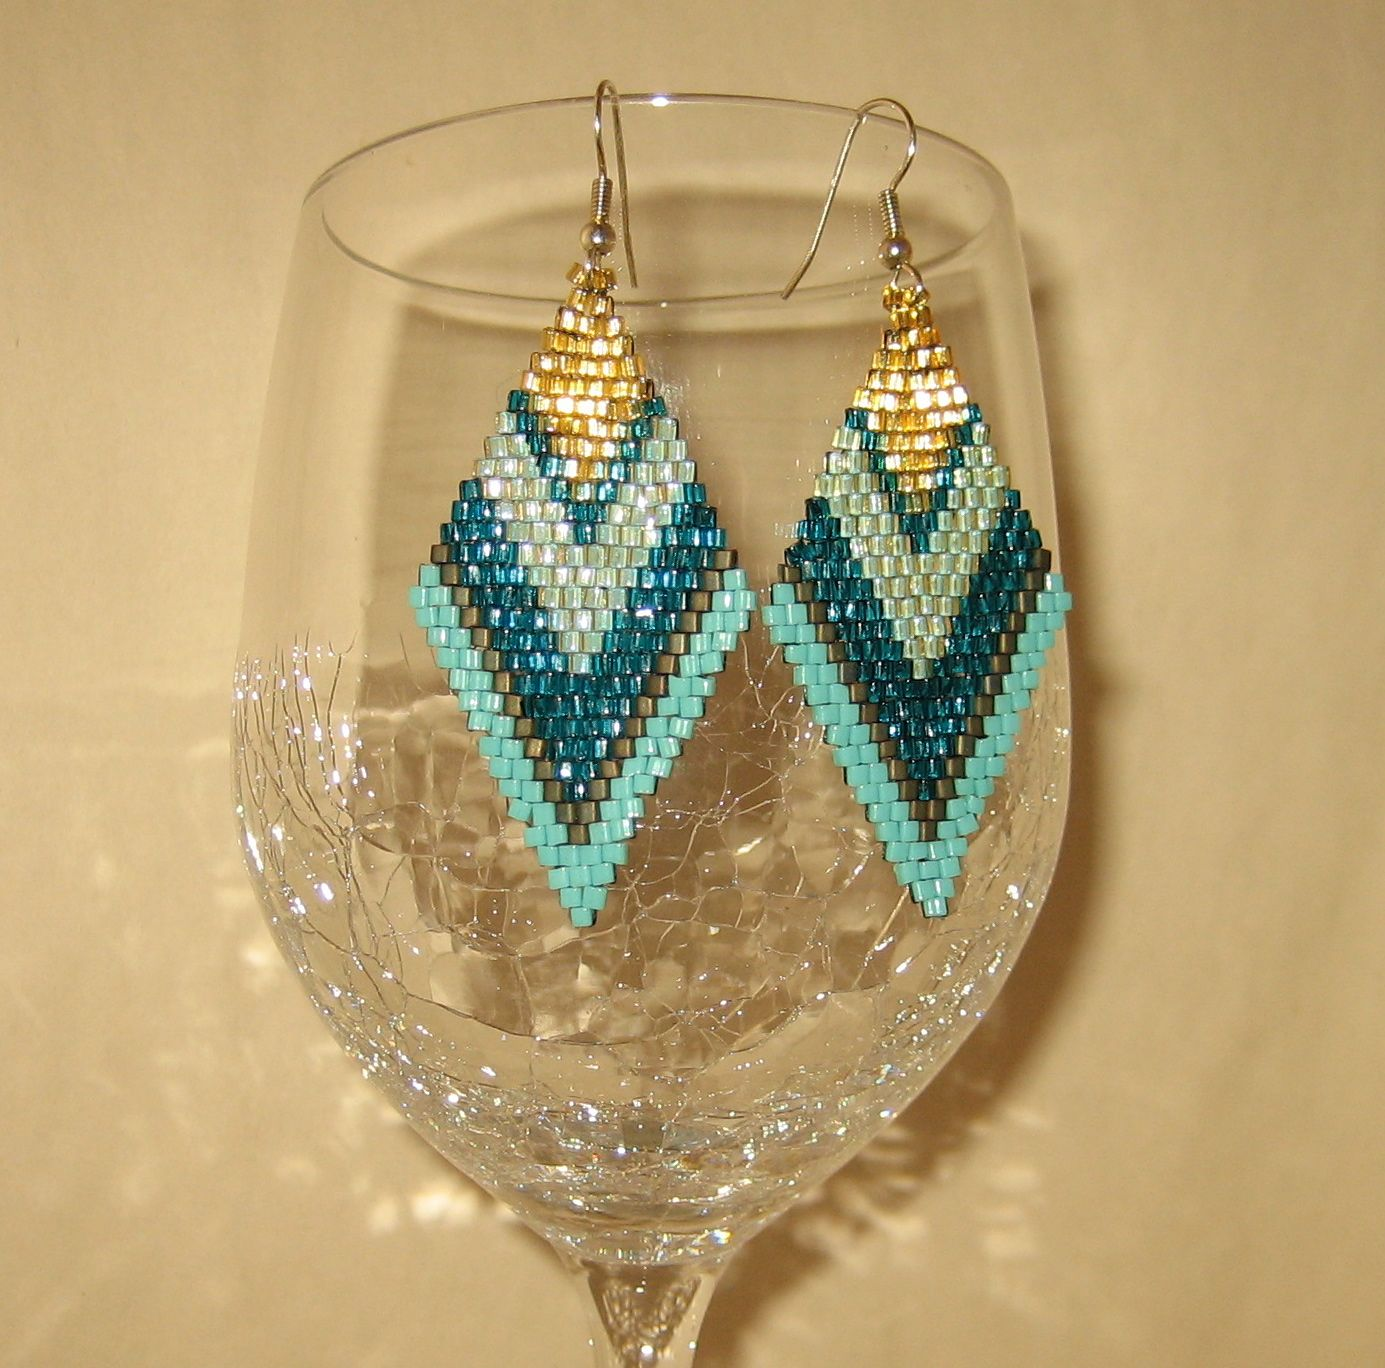 bead stitch jewelry stefania fancy best pinterest images on beautiful brick earring earrings arhyonel